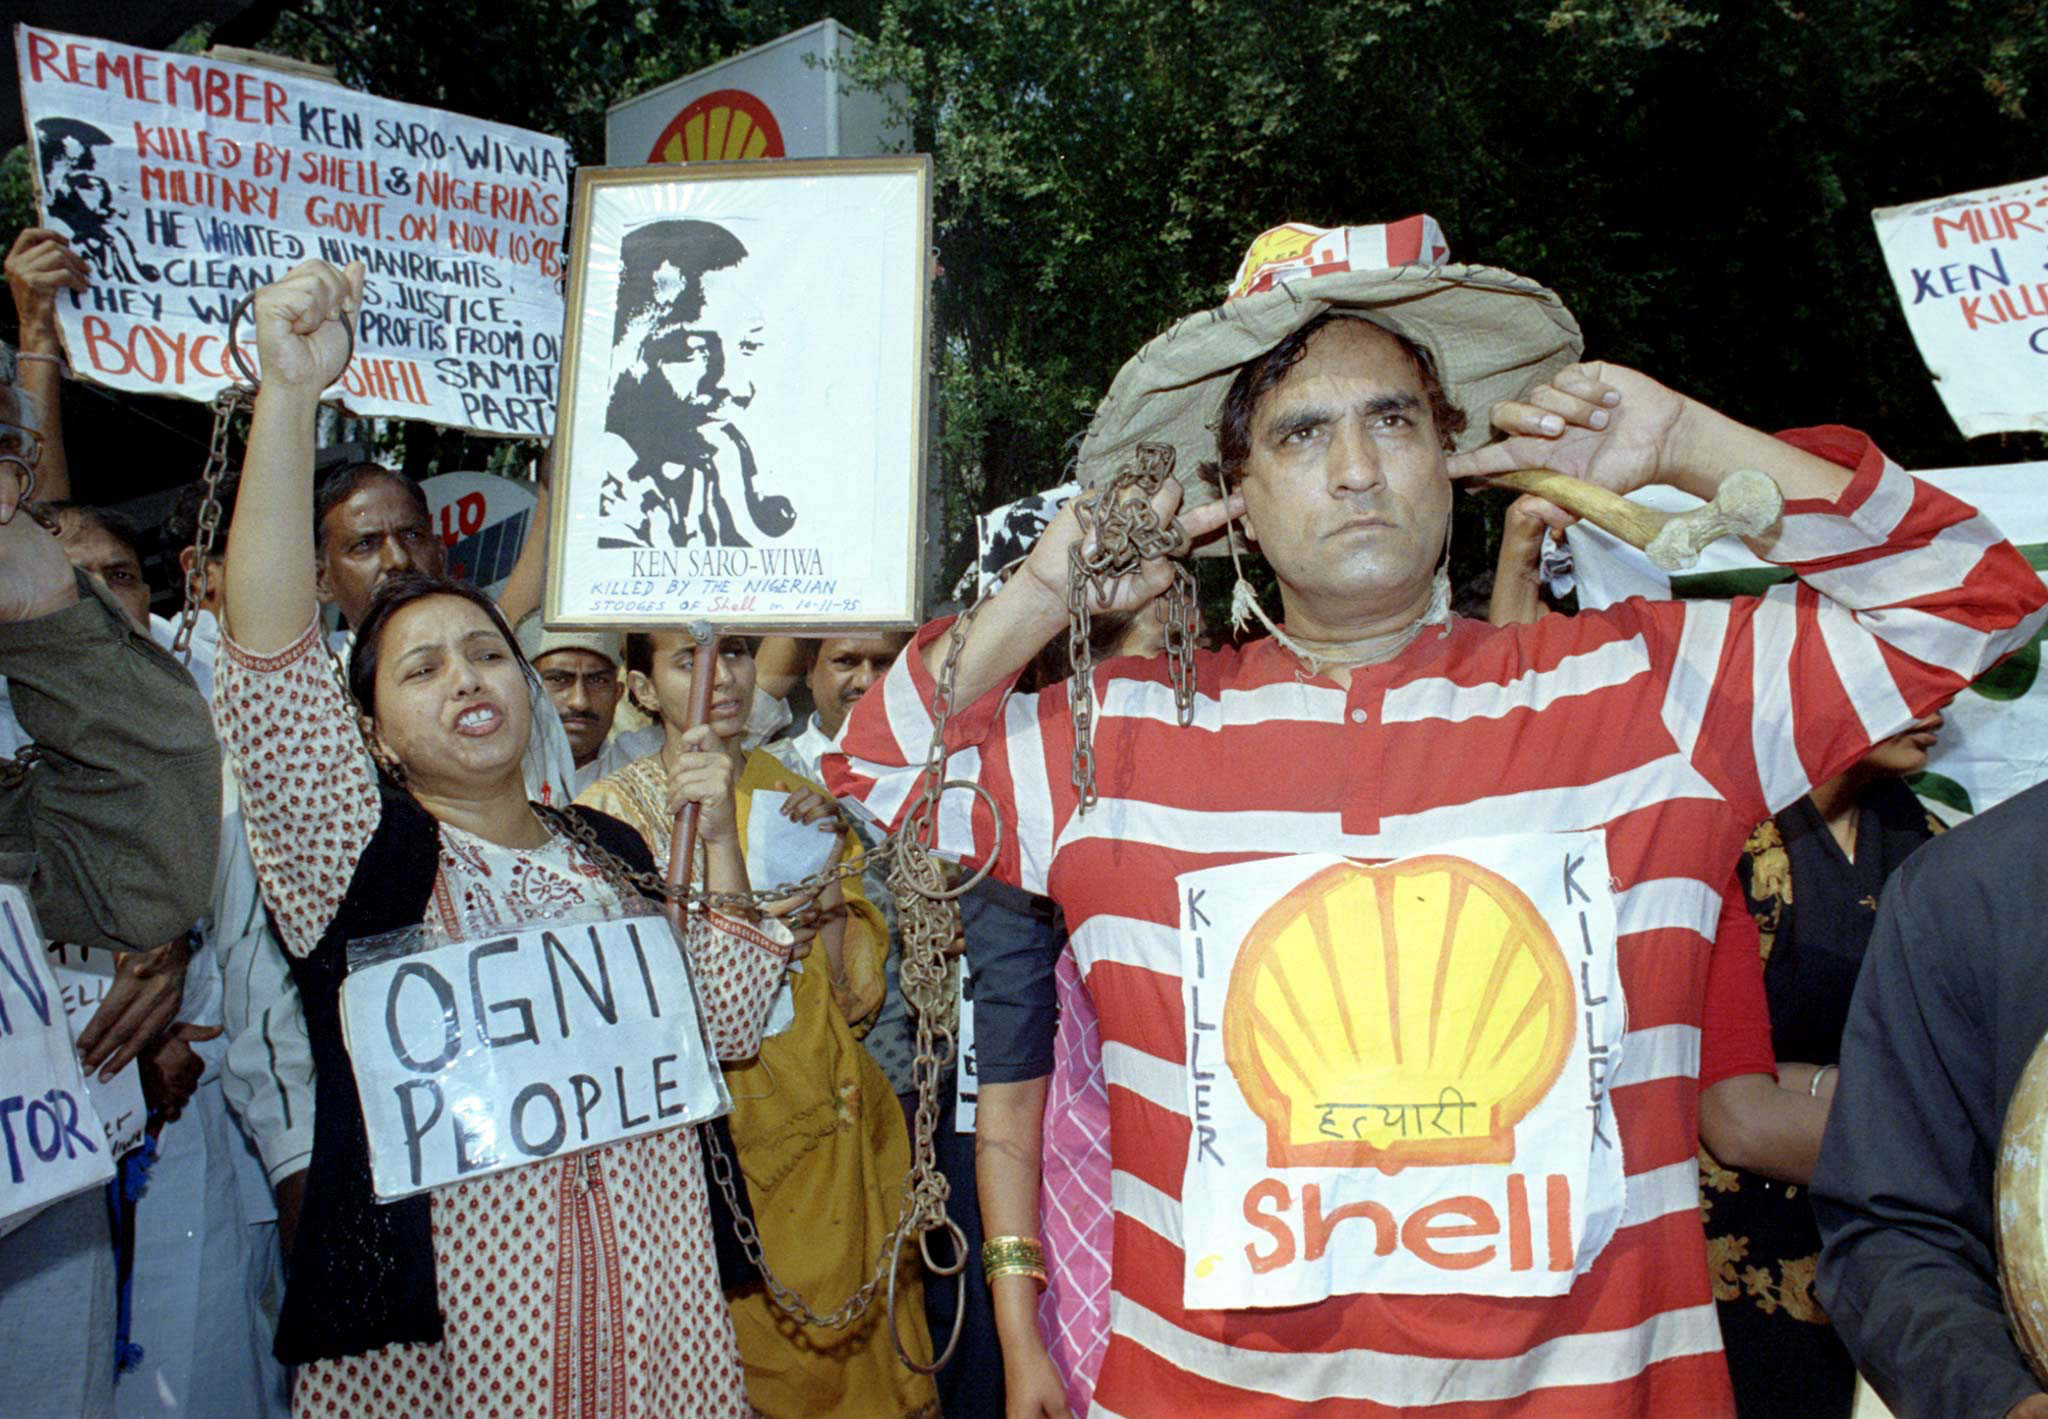 ACTIVISTS RAISE SLOGANS IN NEW DELHI Activists chant slogans against the Anglo-Dutch oil firm Royal/Dutch Shell in New Delhi November 10 during a protest march to commemorate the second anniversary of the death of Nigerian environmental campaigner Ken Saro-wiwa. The activist, who was leading a protest against Shell, was hanged along with eight of his Ogoni tribe activists by Nigeria's military police on November 10, 1995. The activists accuse Shell of not helping villagers near its oilfields and say it should have put pressure on the governnment to stop their execution. INDIA NETHERLANDS